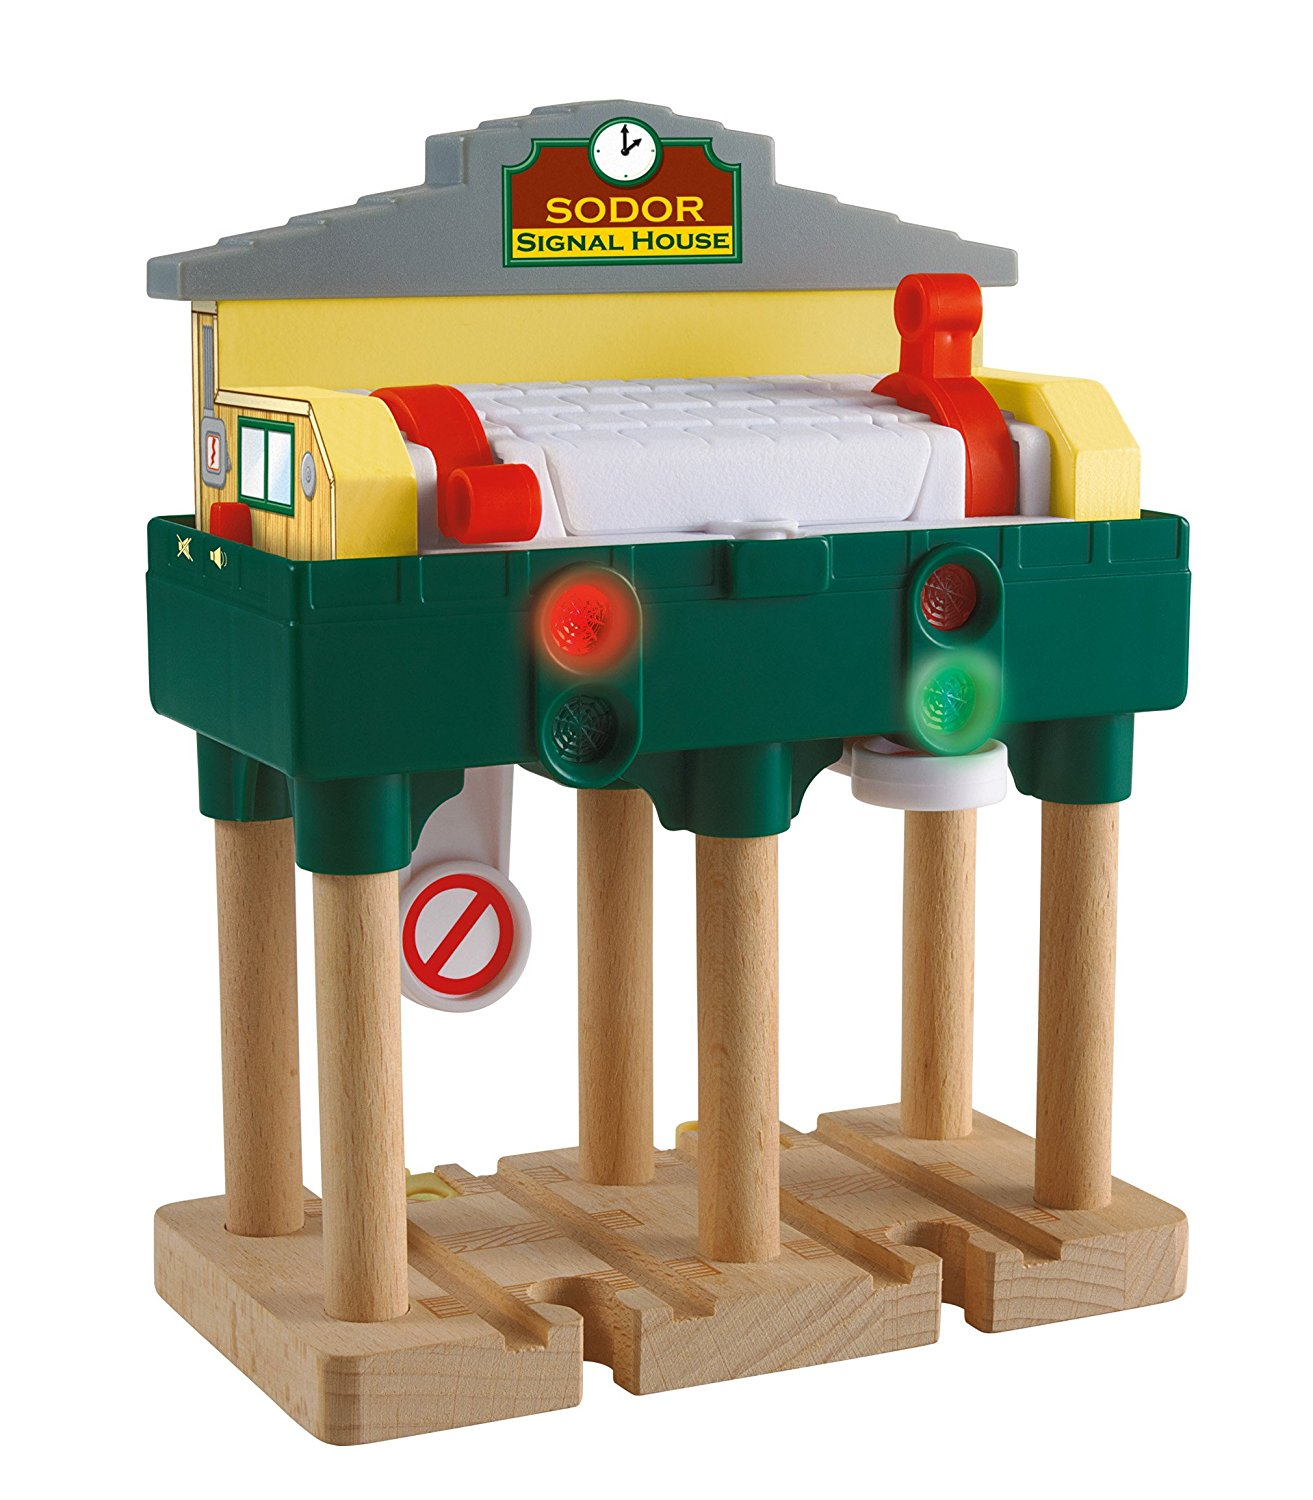 Fisher Price Thomas & Friends Wooden Railway, Deluxe Over-The-Track Signal - Battery Operated Y4092